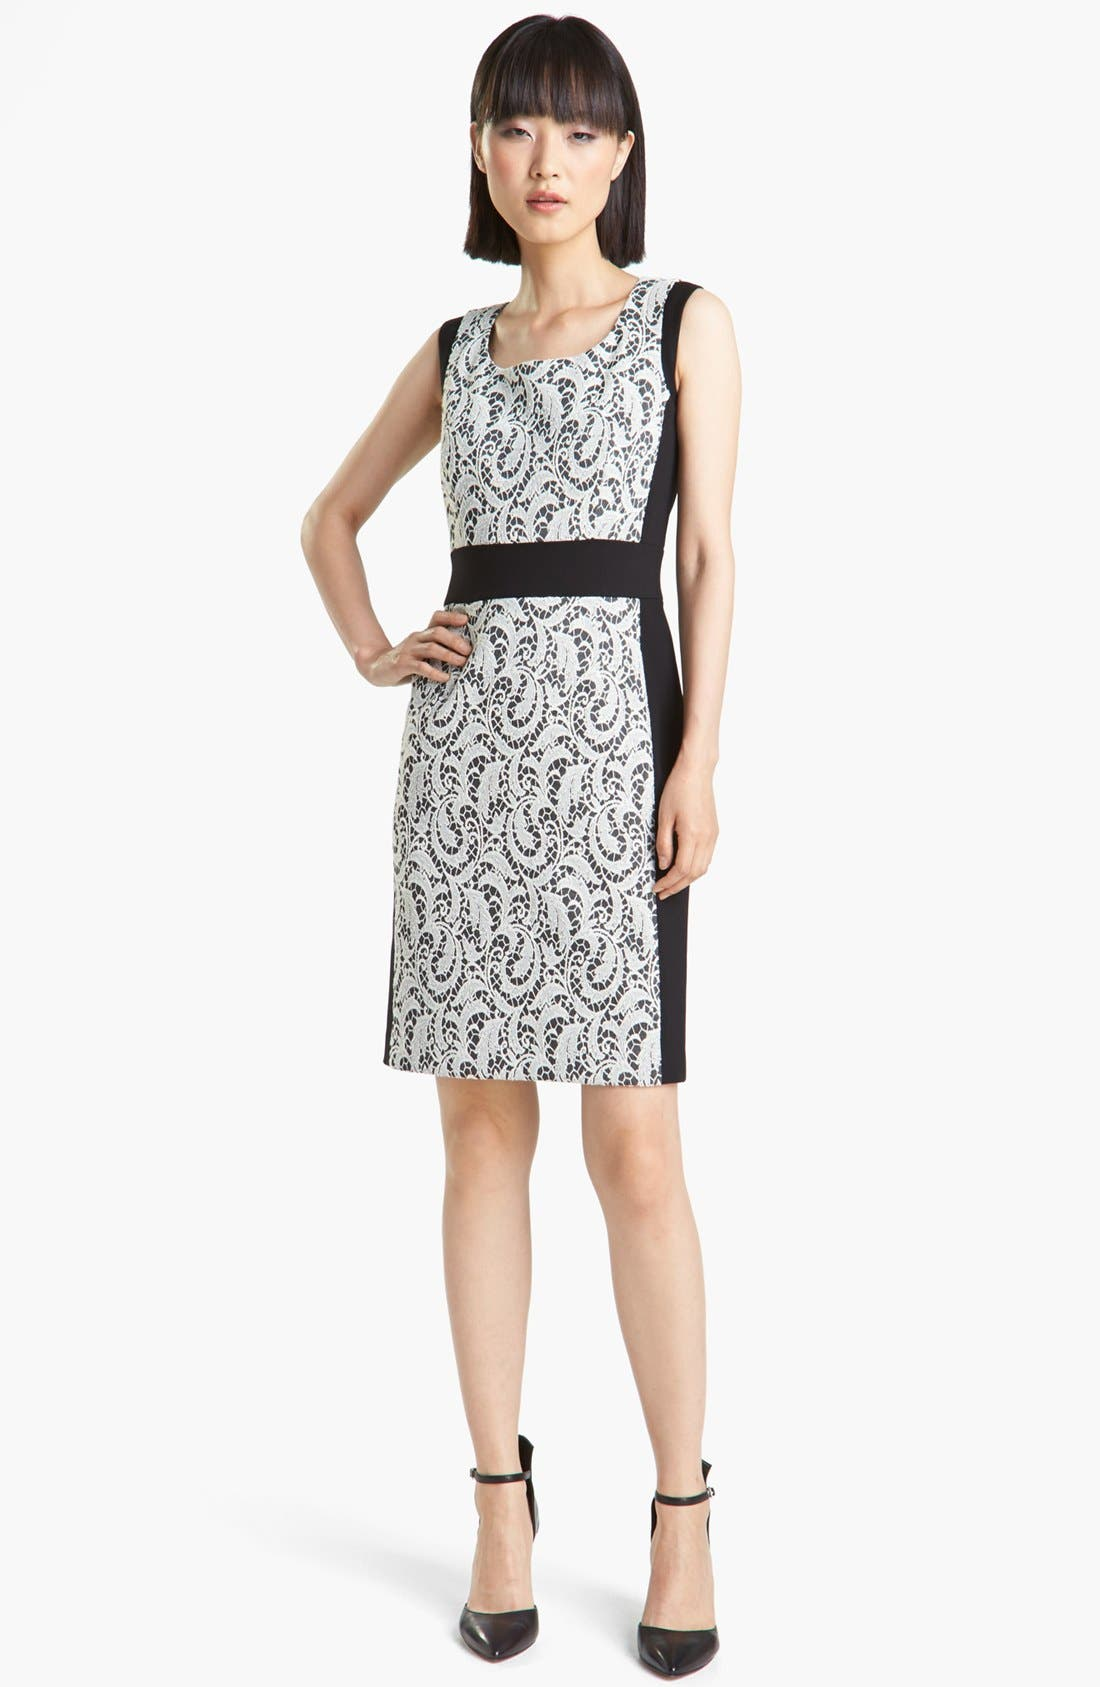 Alternate Image 1 Selected - Lafayette 148 New York 'Ansel - Chantilly Jacquard' Dress